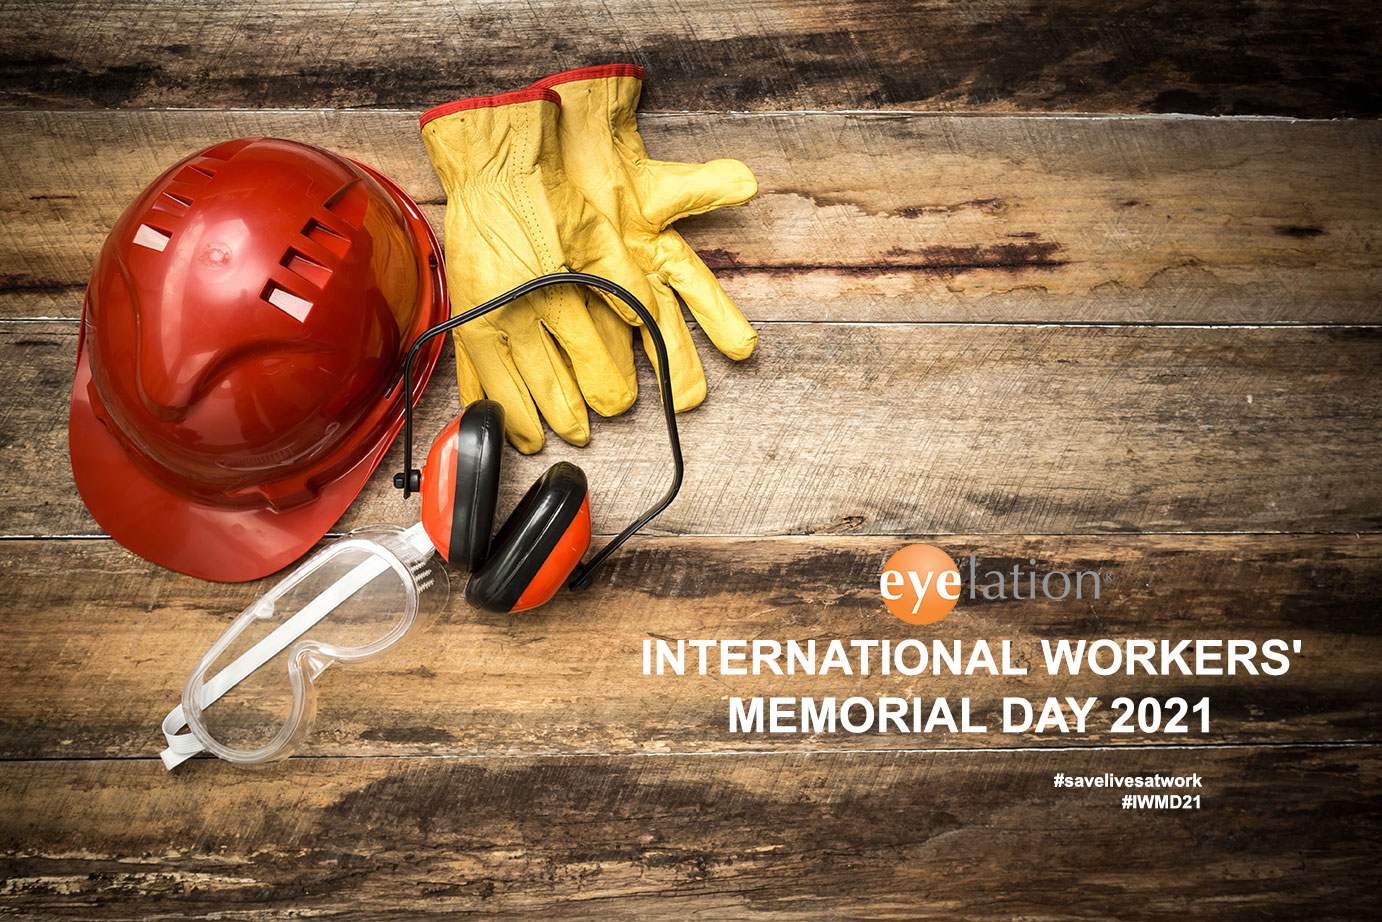 Internationals Workers Memorial Day